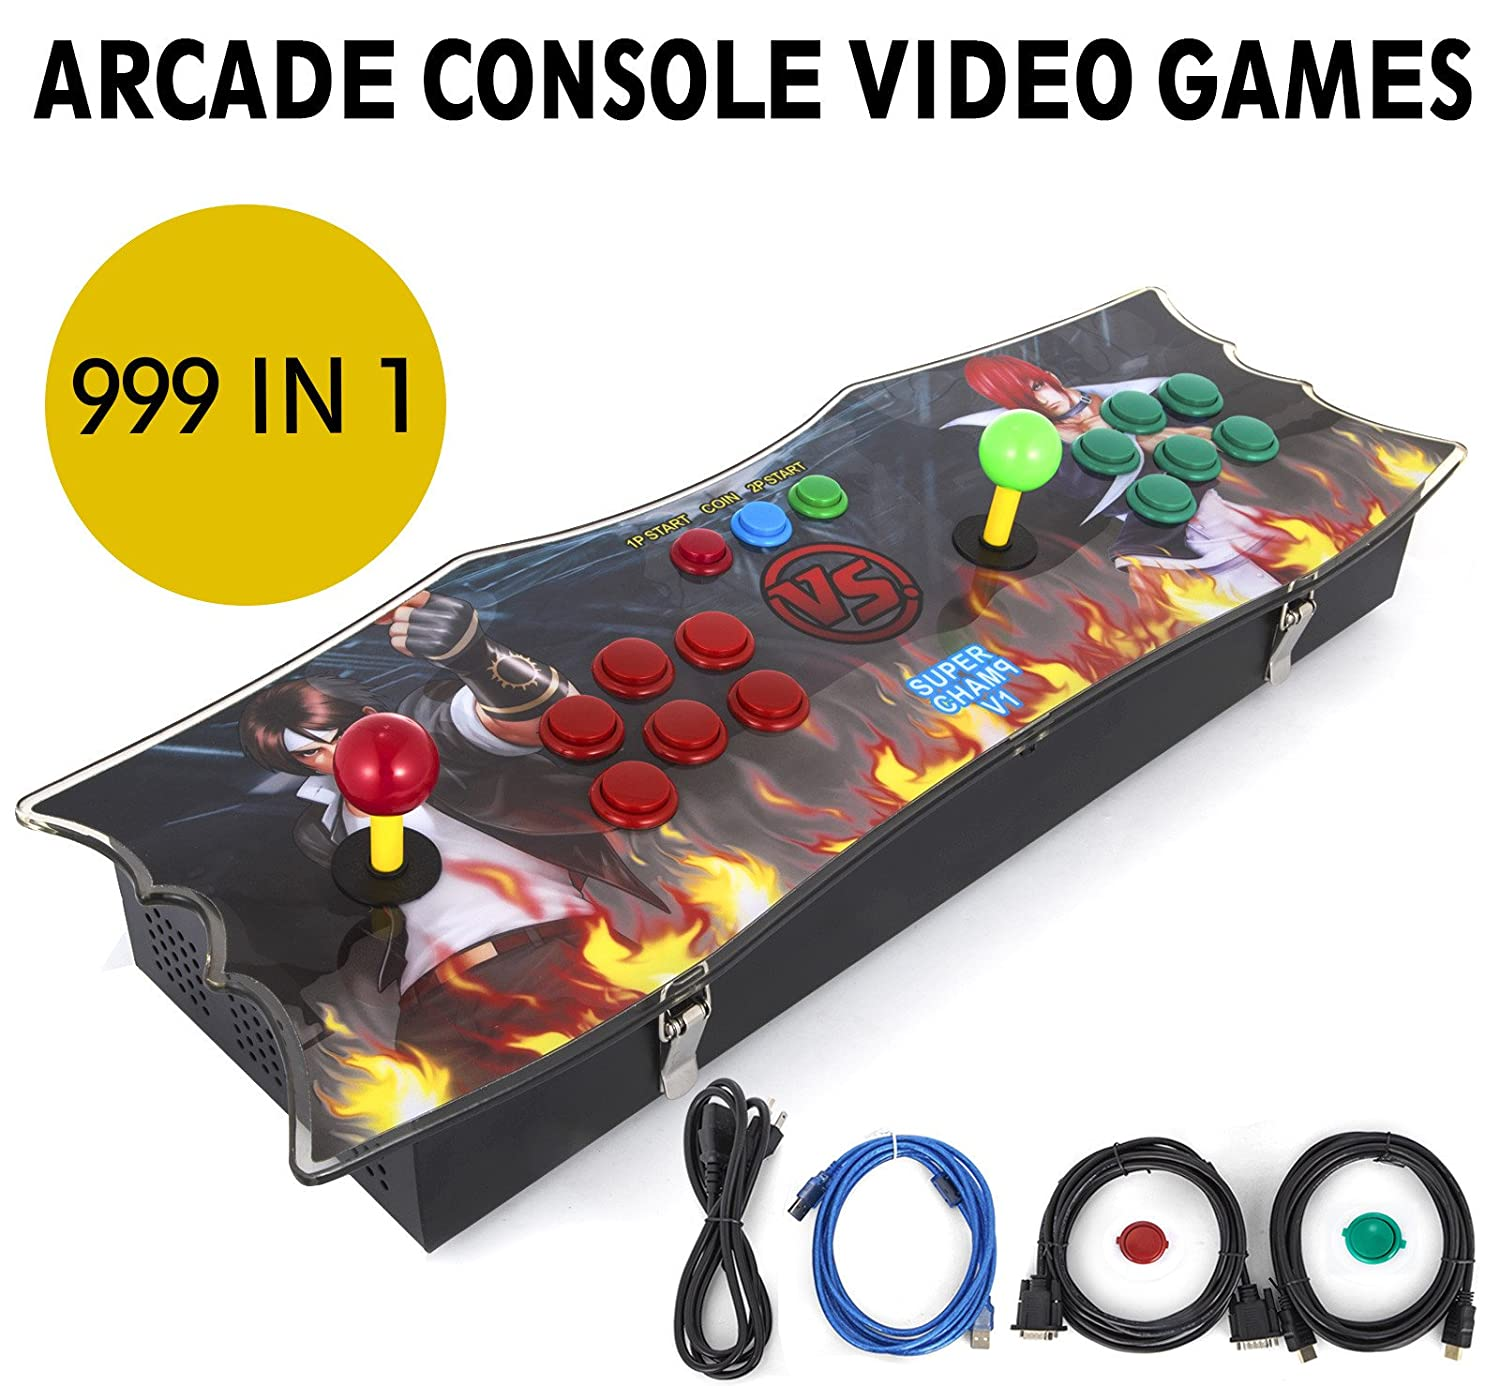 Happybuy Arcade Game Console 1280P Games 1500 in 1 Pandoras Box 2 Players Arcade Machine with Arcade Joystick Support Expand Games for PC / Laptop / ...